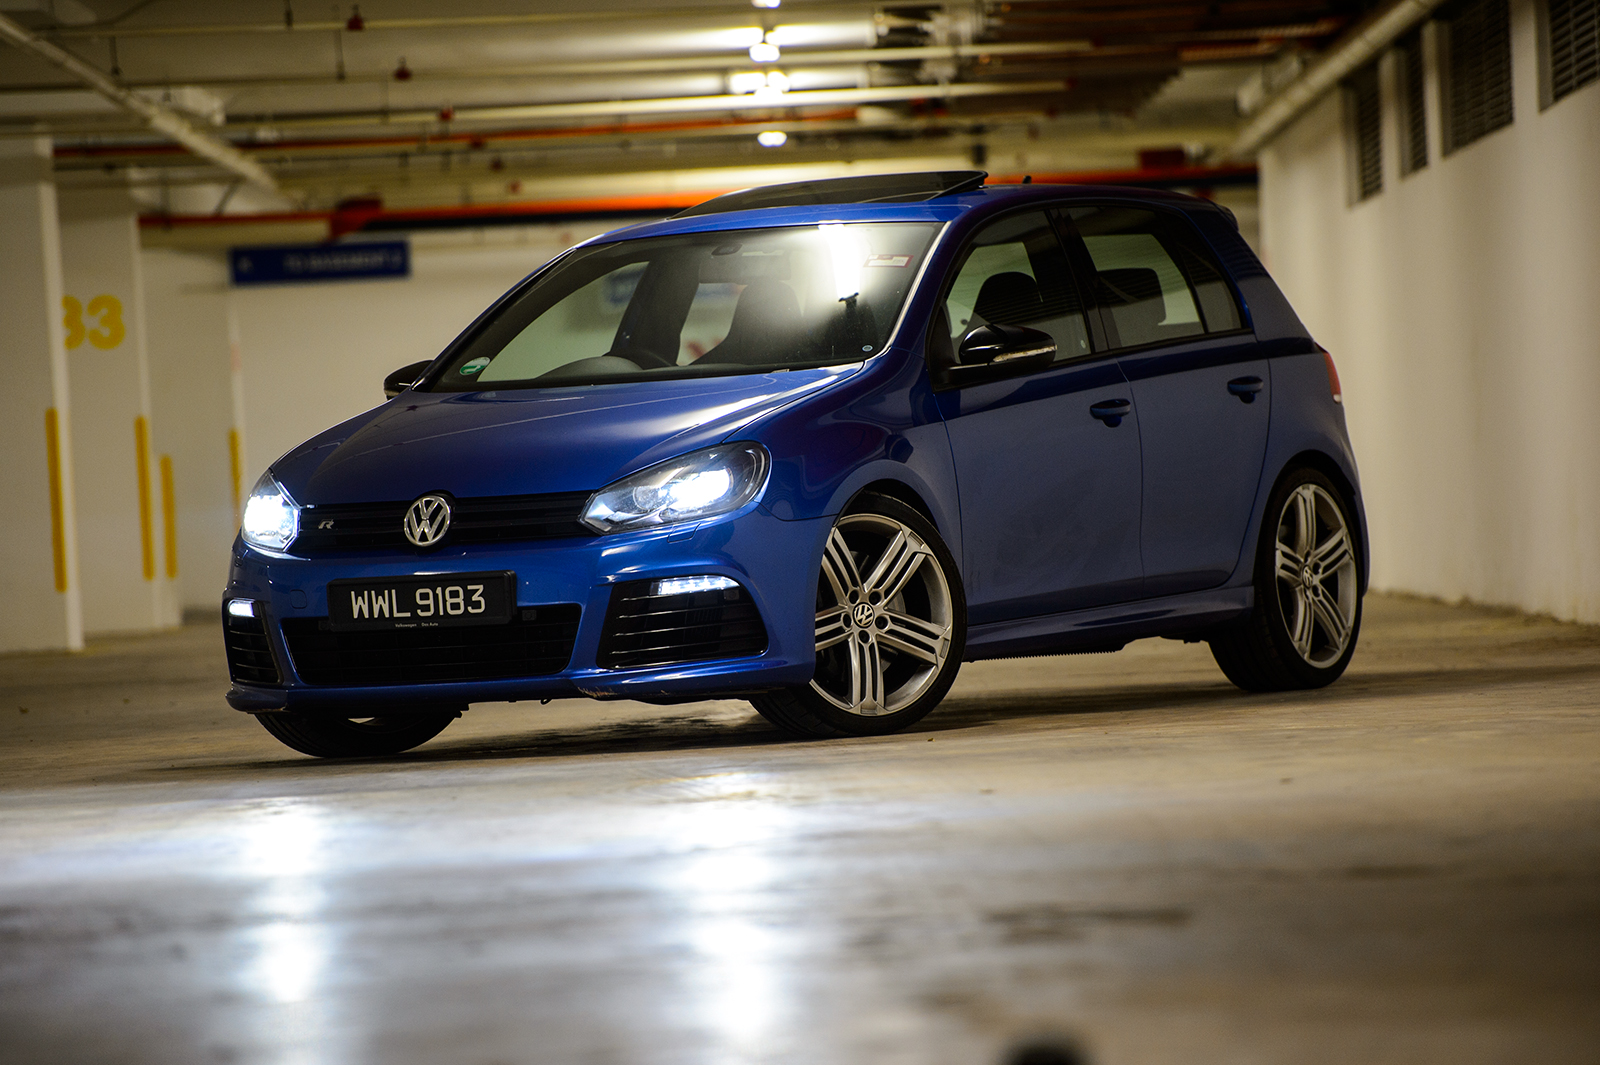 The Volkswagen Golf R Ultimate Kensomuse Wiring Harness